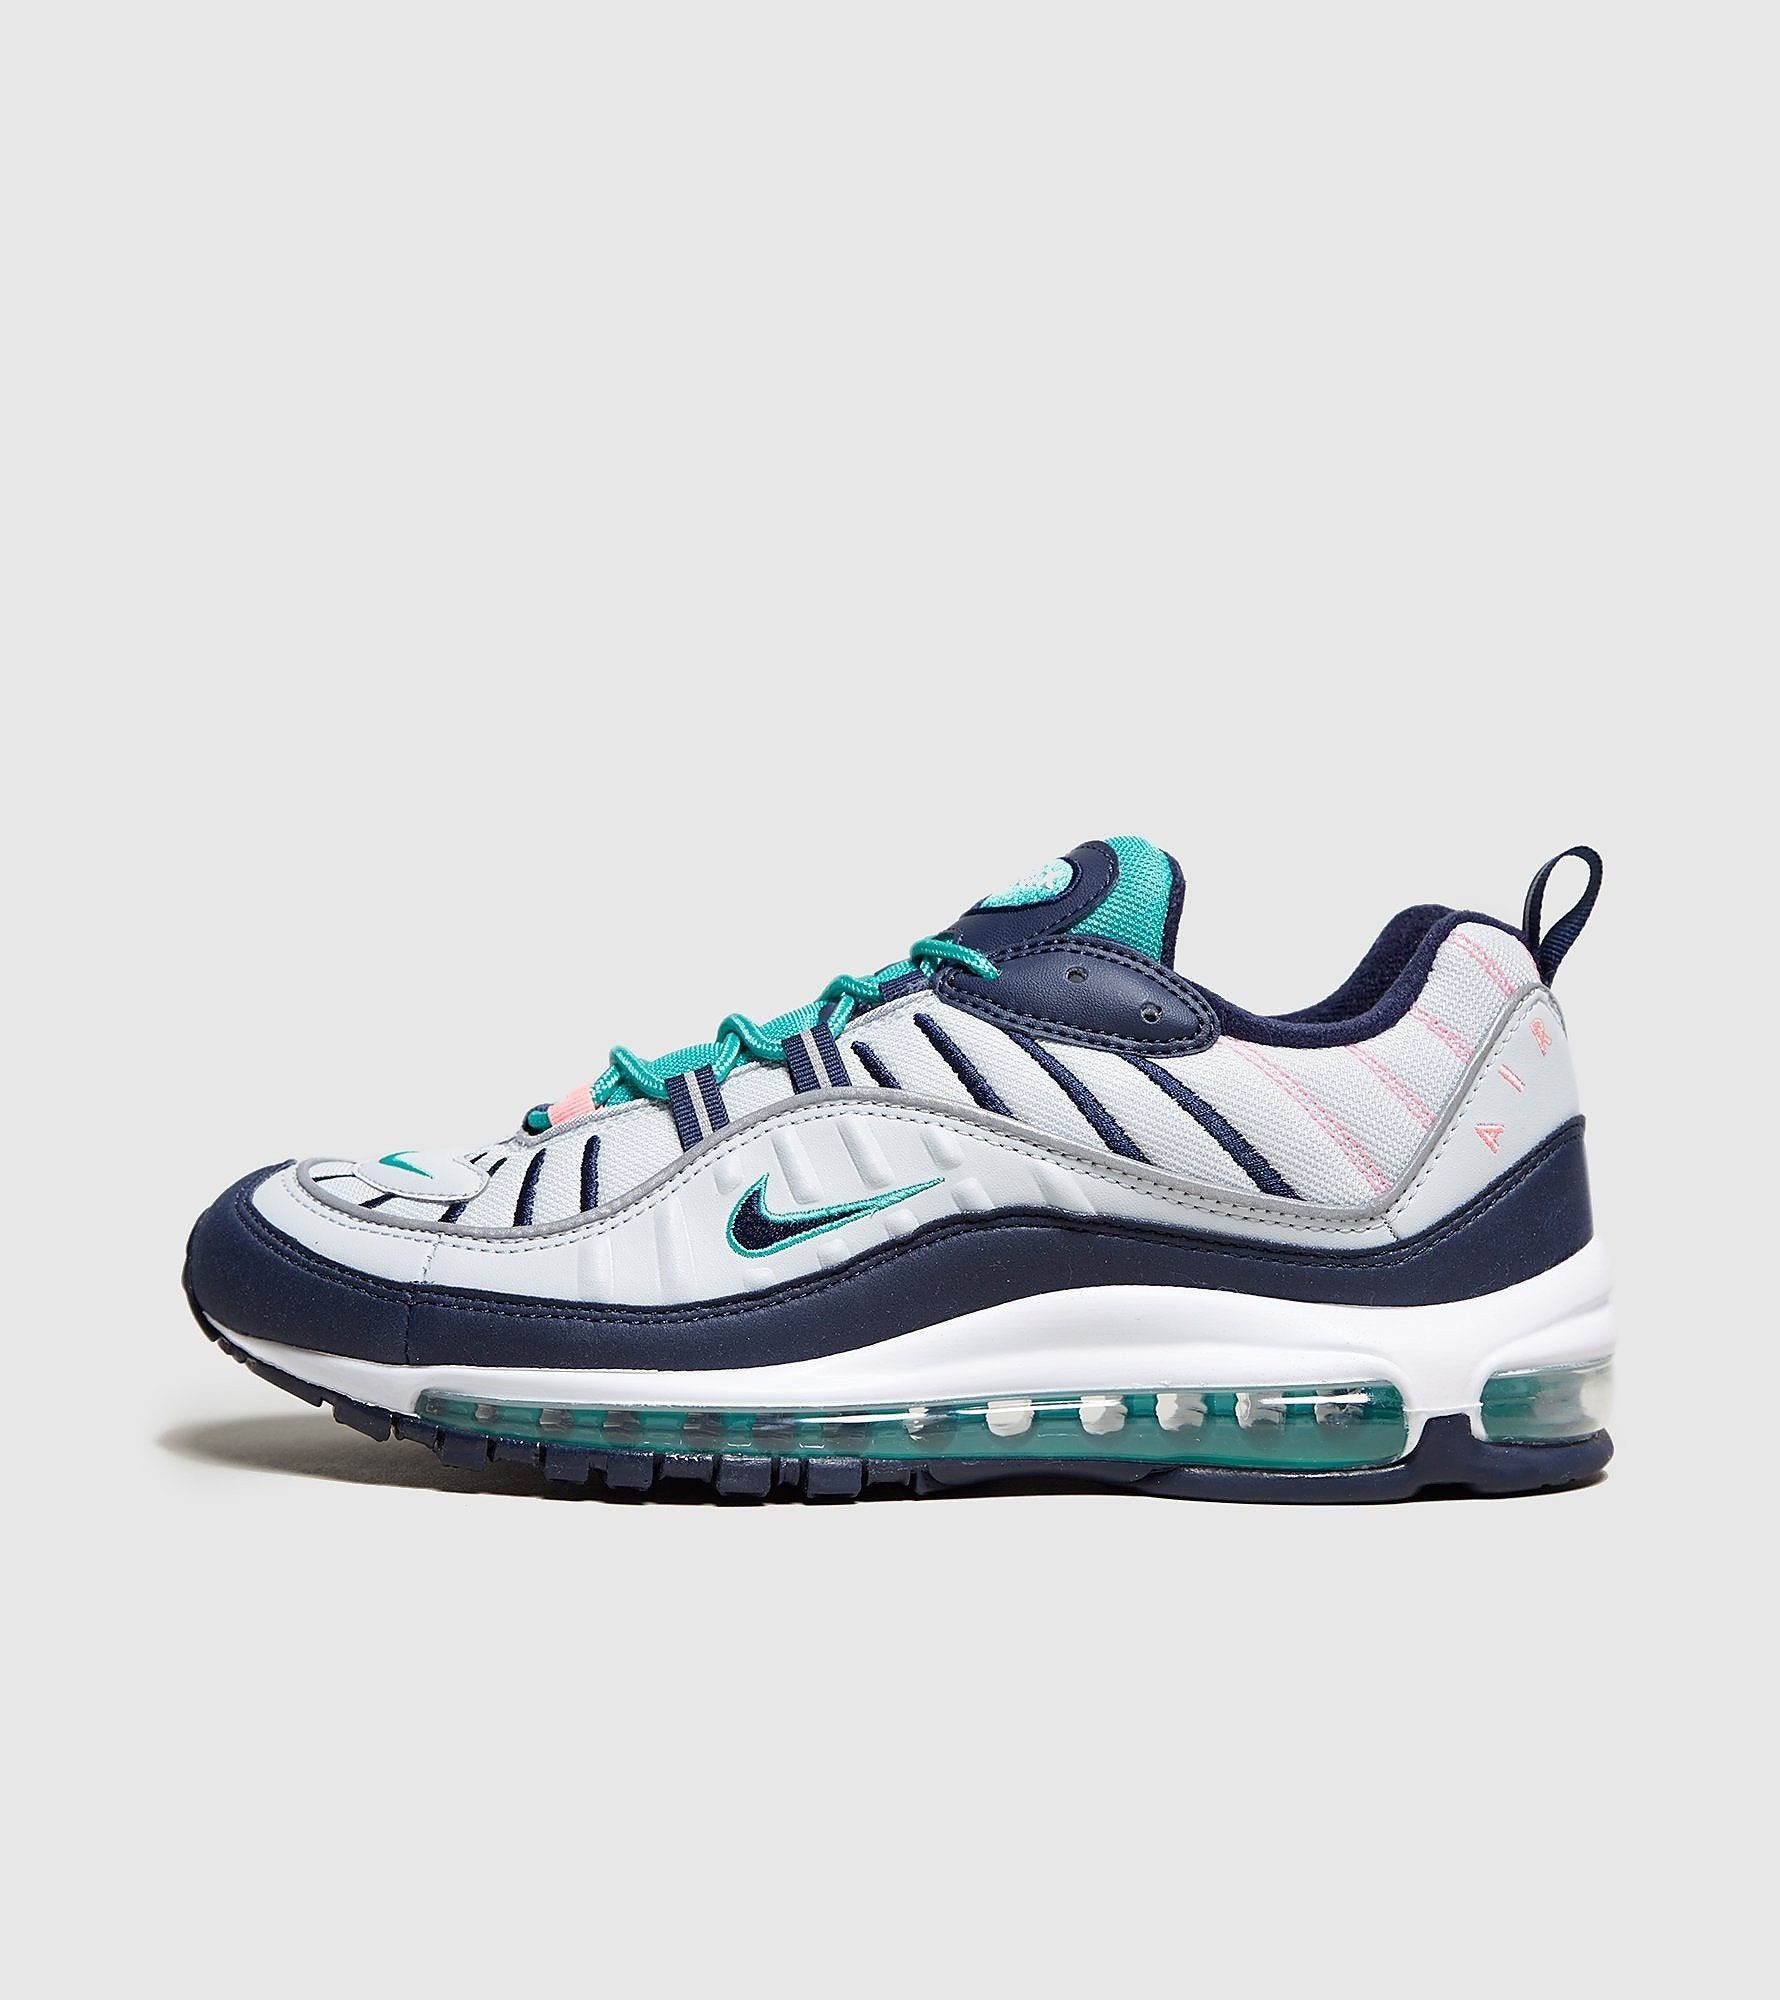 new arrivals 30c0b dcb58 Nike Nike Air Max 98, White/Navy/Green at Soleheaven Curated Collections